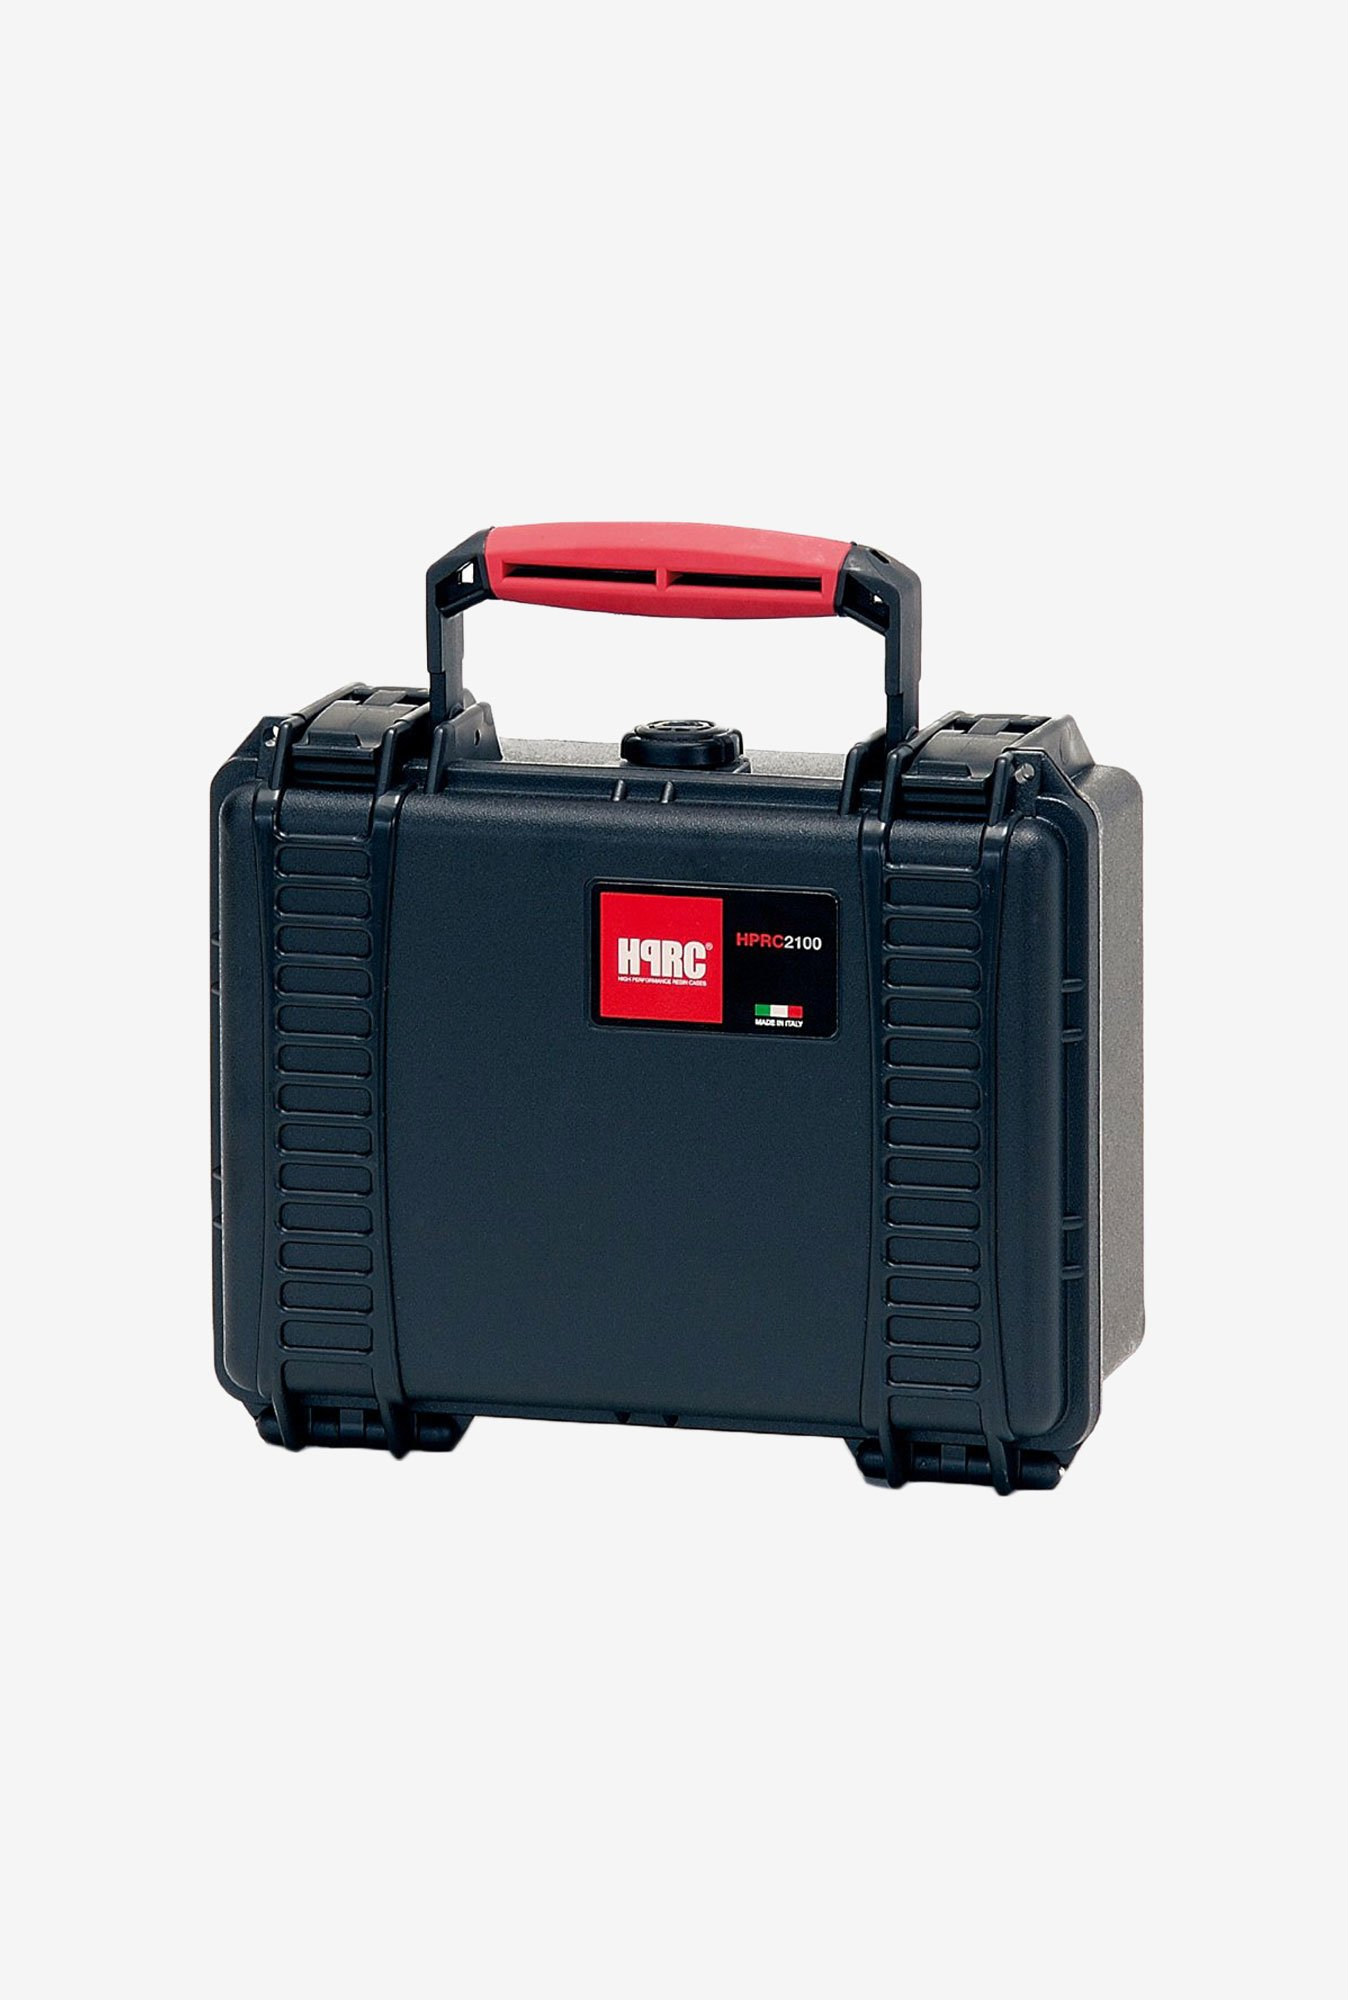 HPRC 2100E Empty Hard Case (Black)